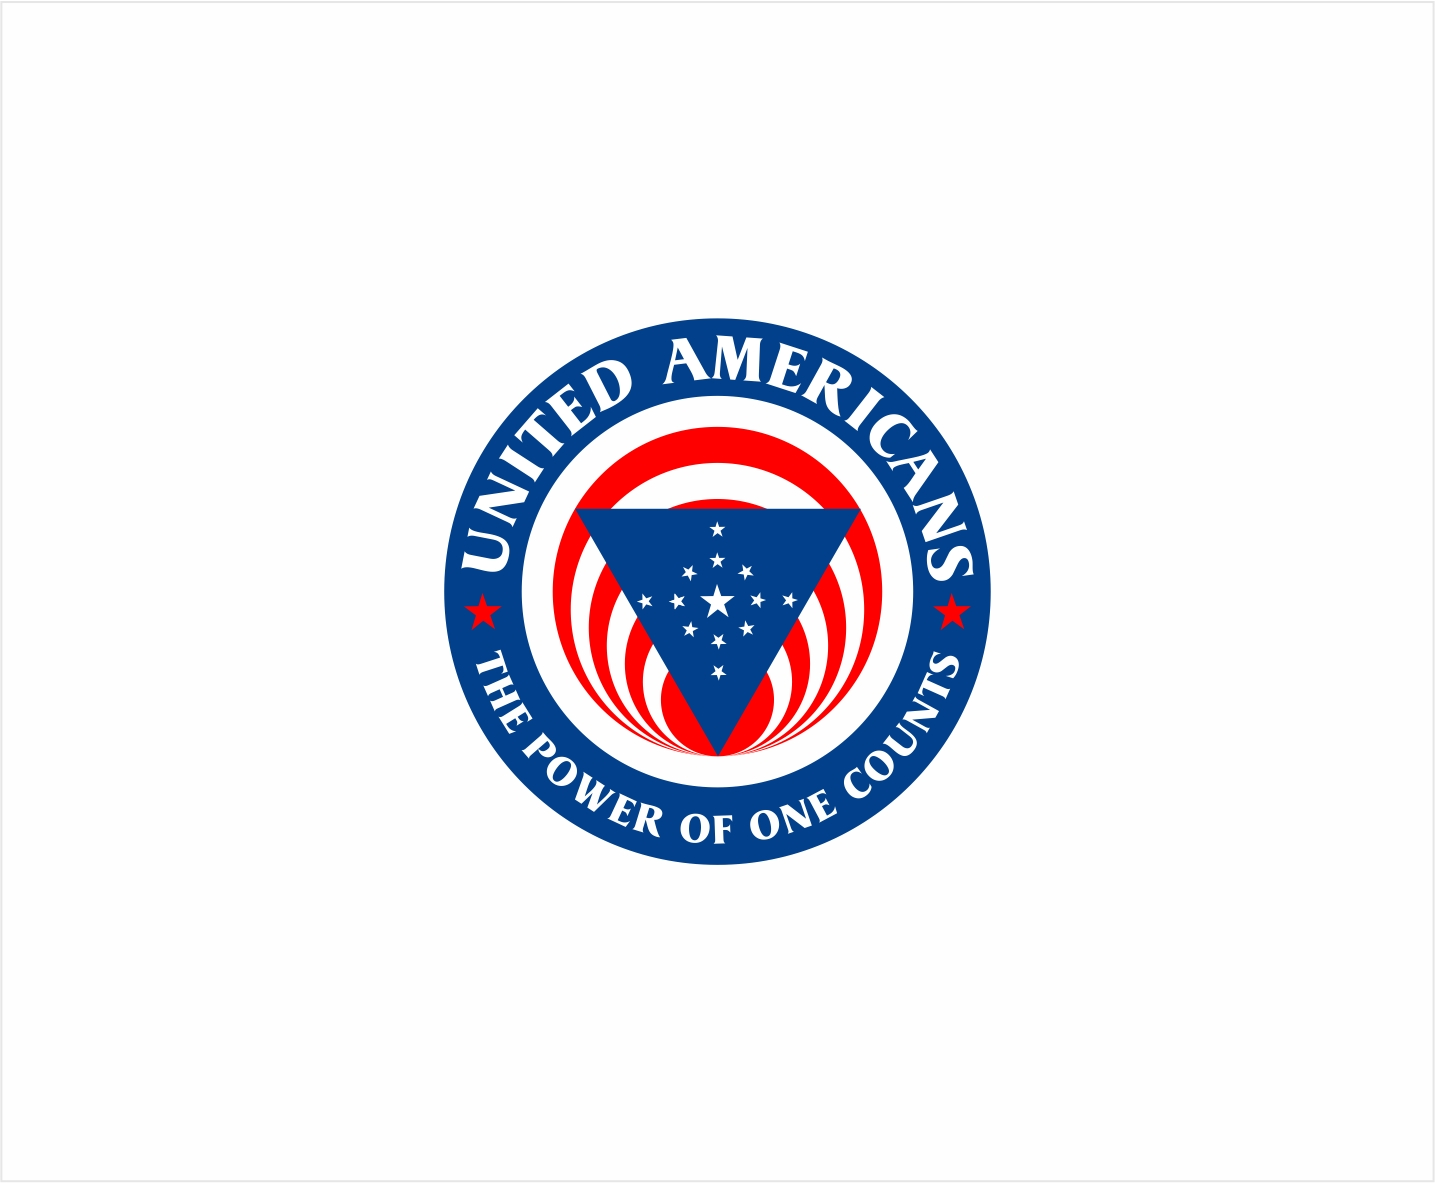 Logo Design by haidu - Entry No. 94 in the Logo Design Contest Creative Logo Design for United Americans.